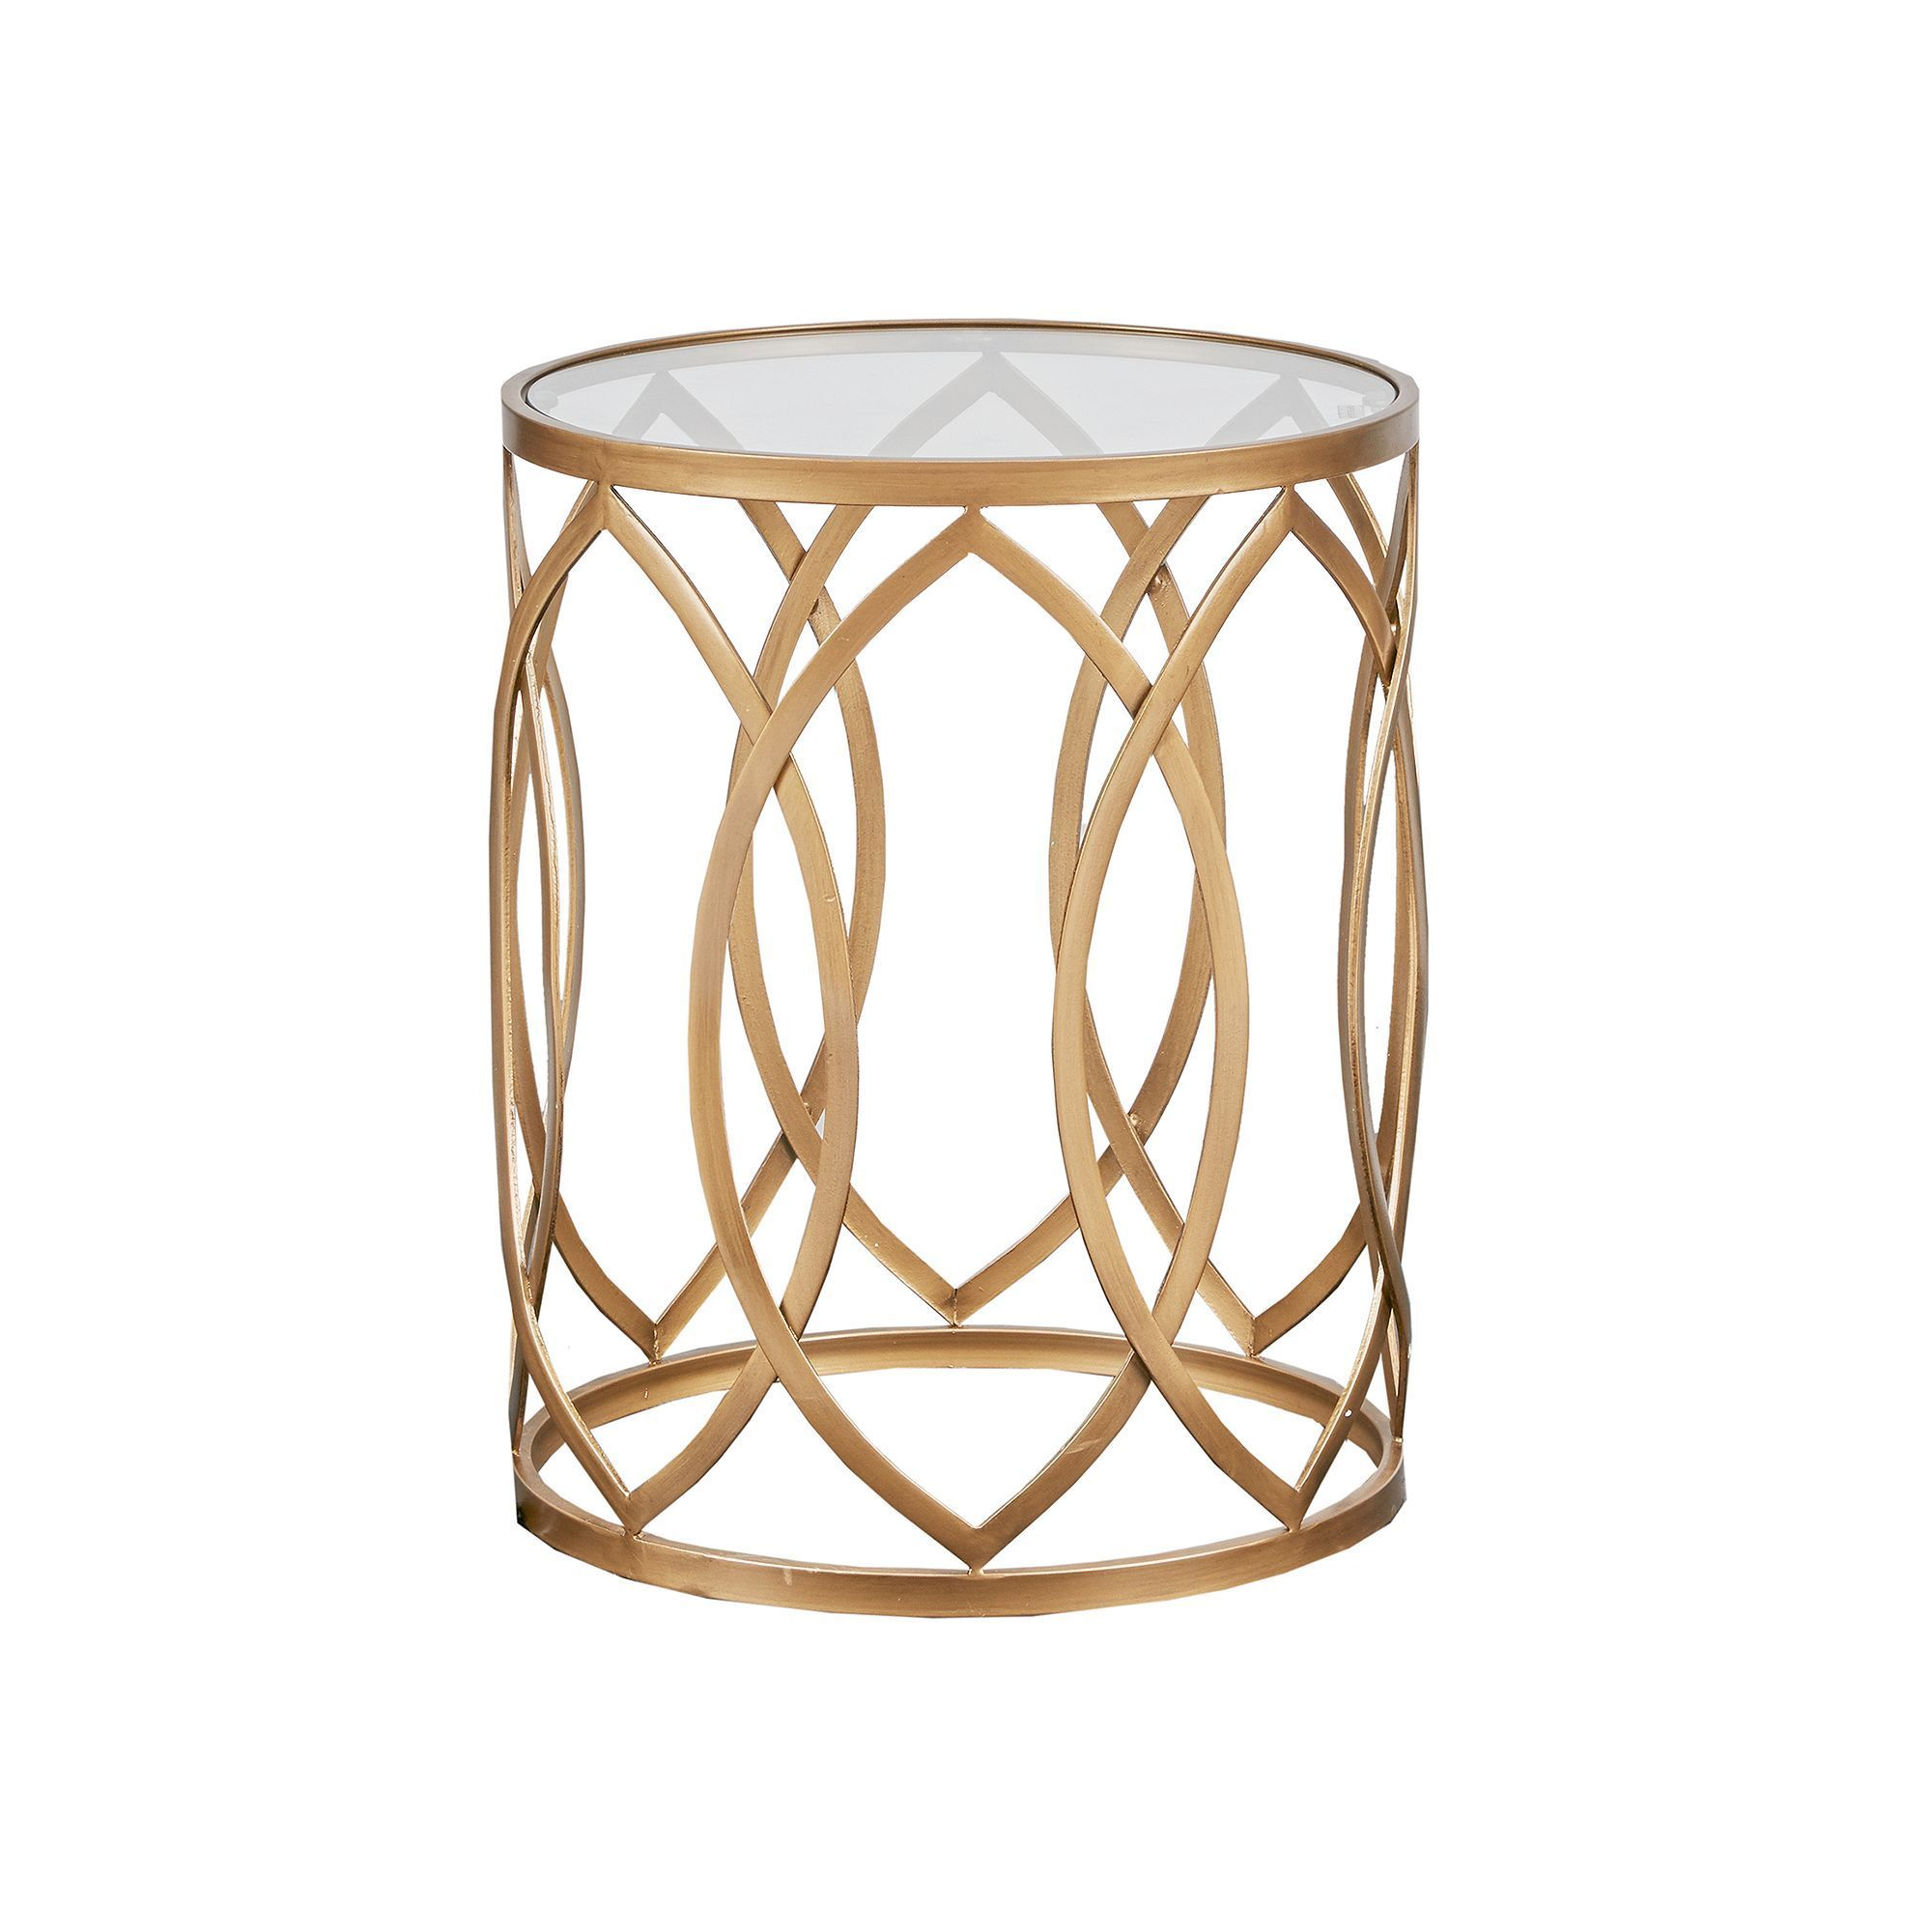 madison park coen metal end table products accent gold large bedside lamps pier one outdoor cushions contemporary coffee and tables slim glass side light bulbs bathroom towels